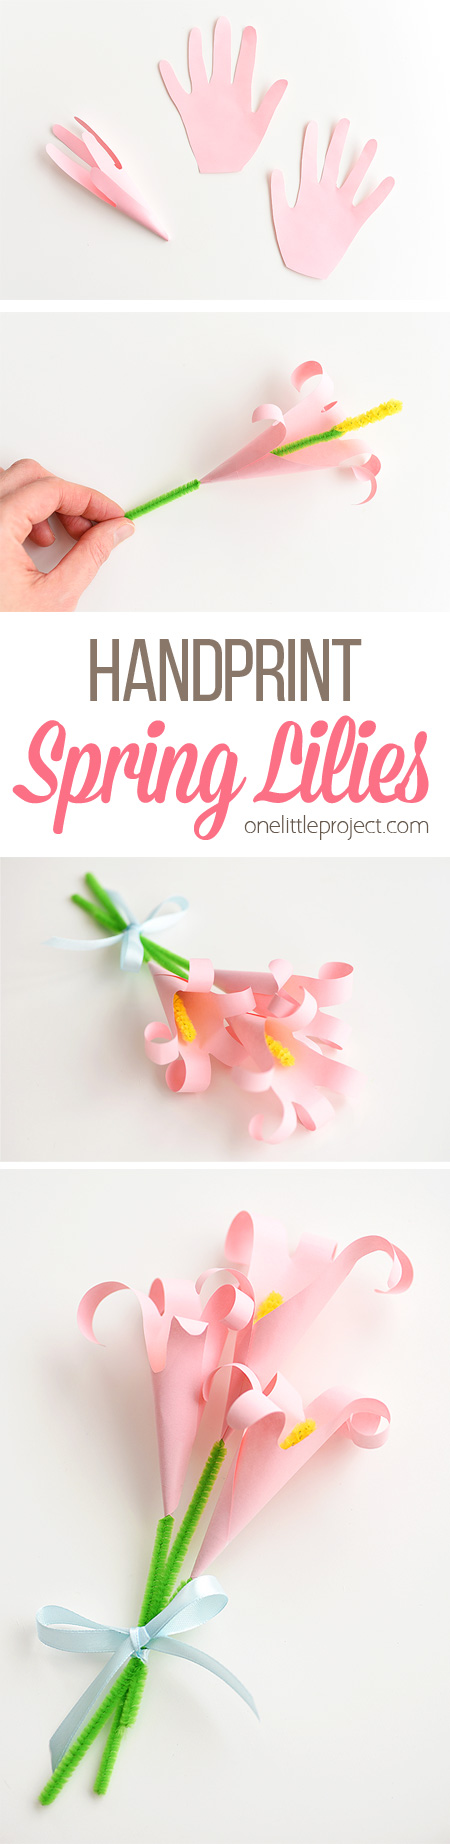 Handprint lilies how to make an easy paper lily these handprint lilies are so easy to make and they look so beautiful you can izmirmasajfo Choice Image